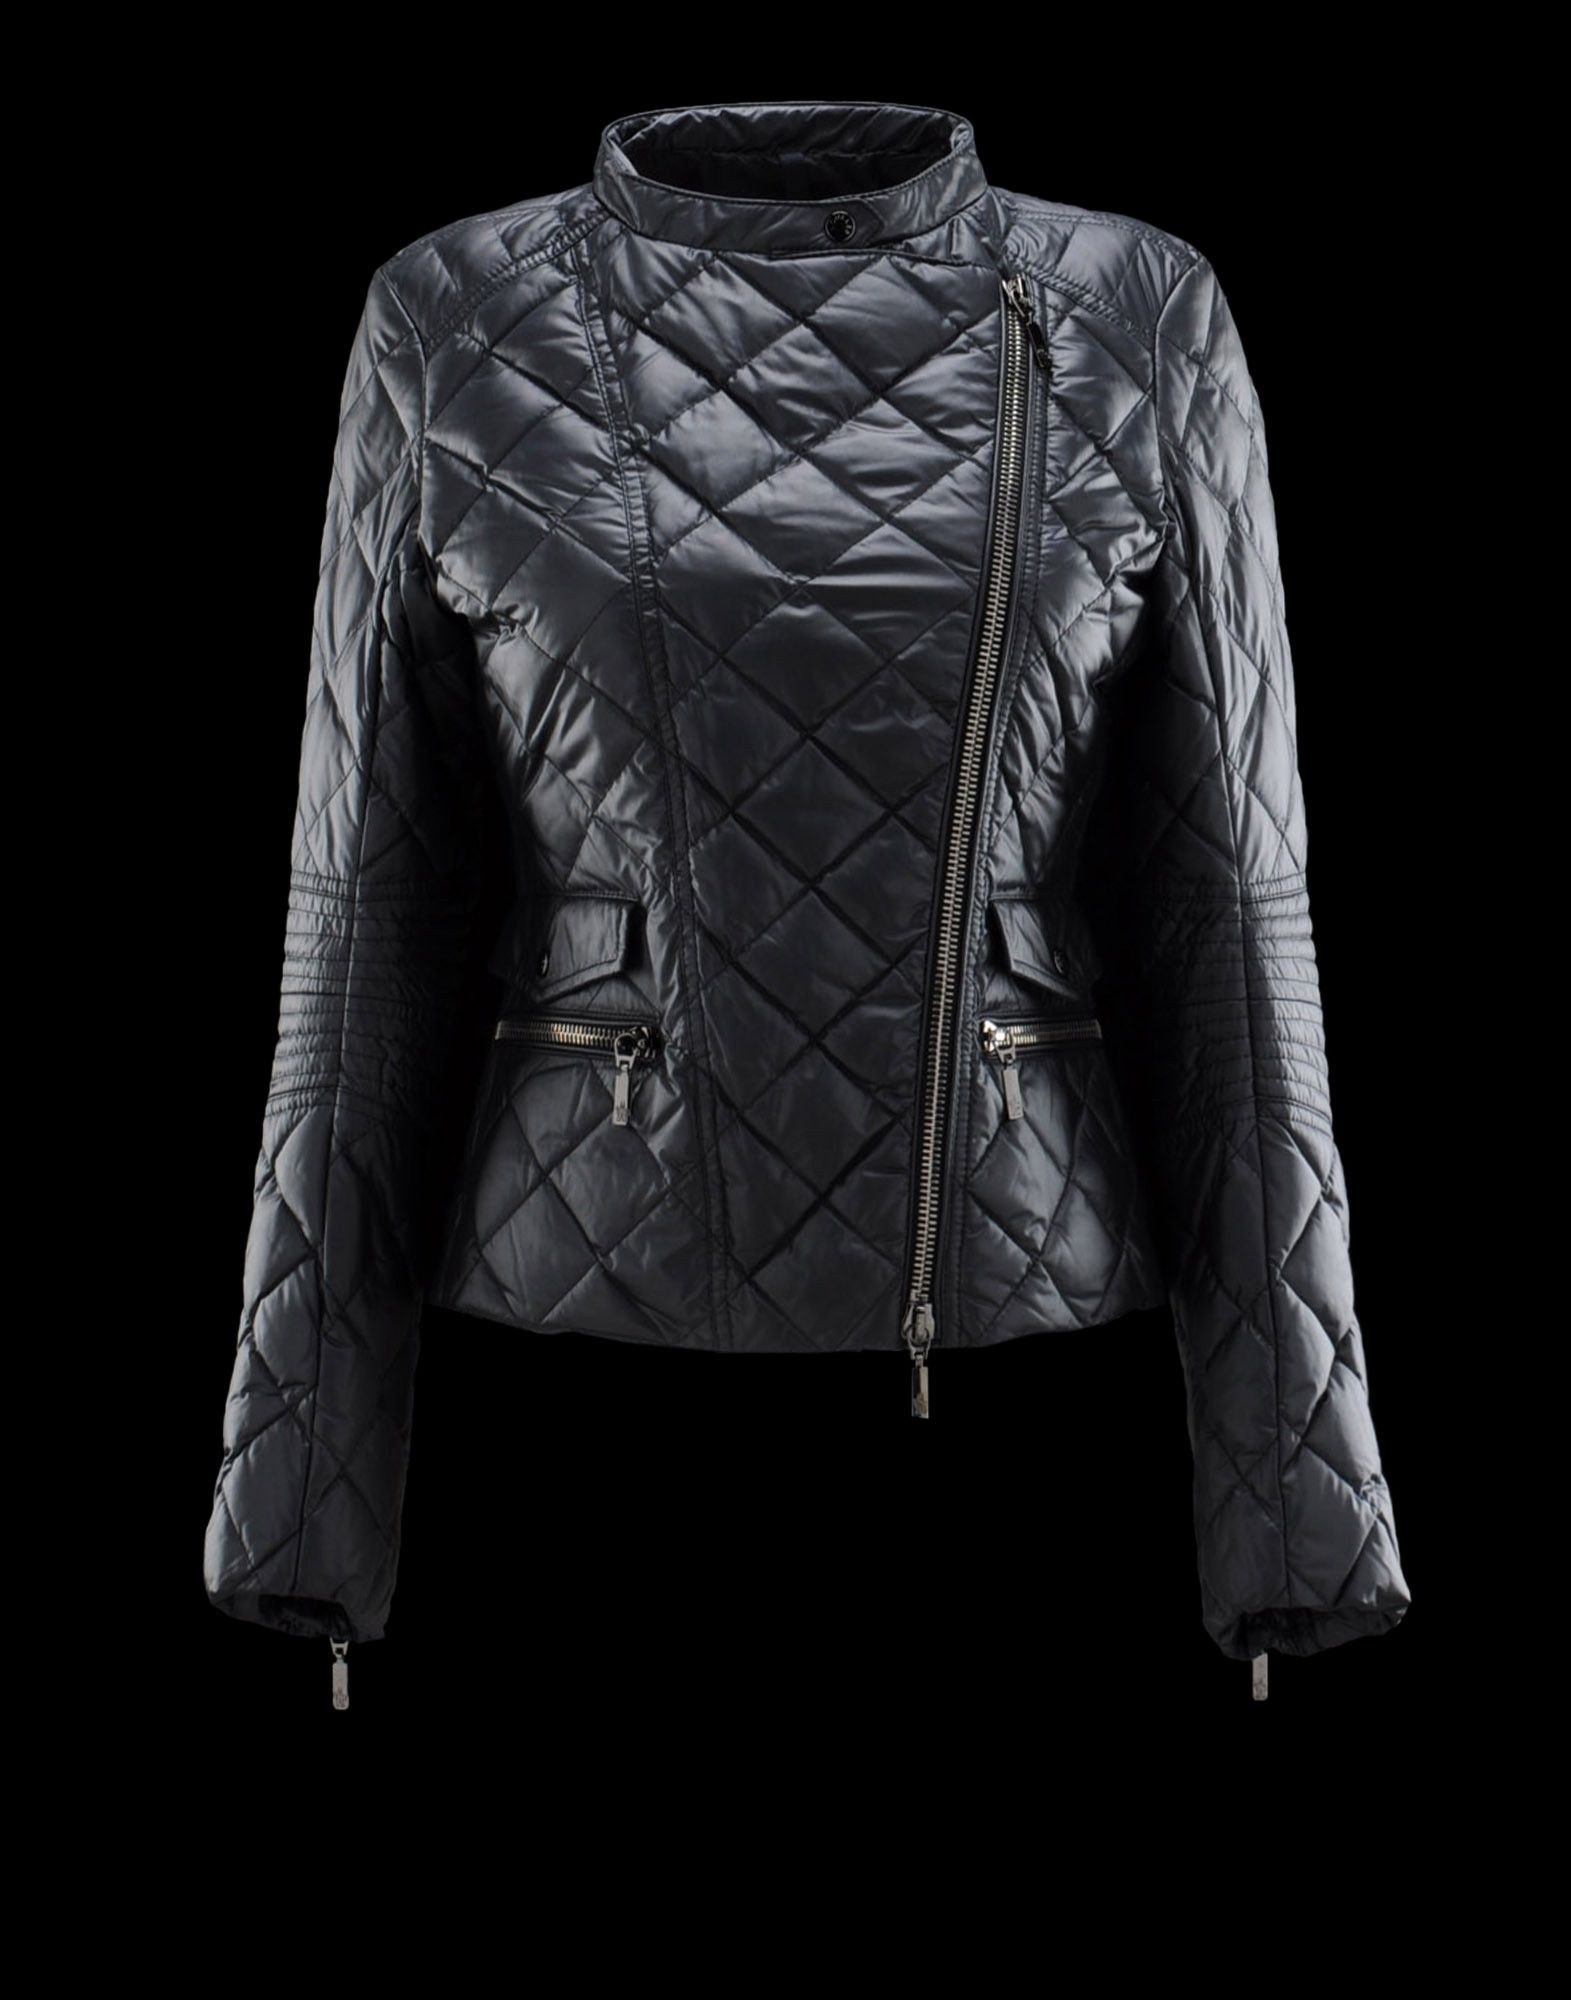 moncler   99 on   fashion trends   Pinterest   Moncler, Snow bunnies ... 3f8183f256c